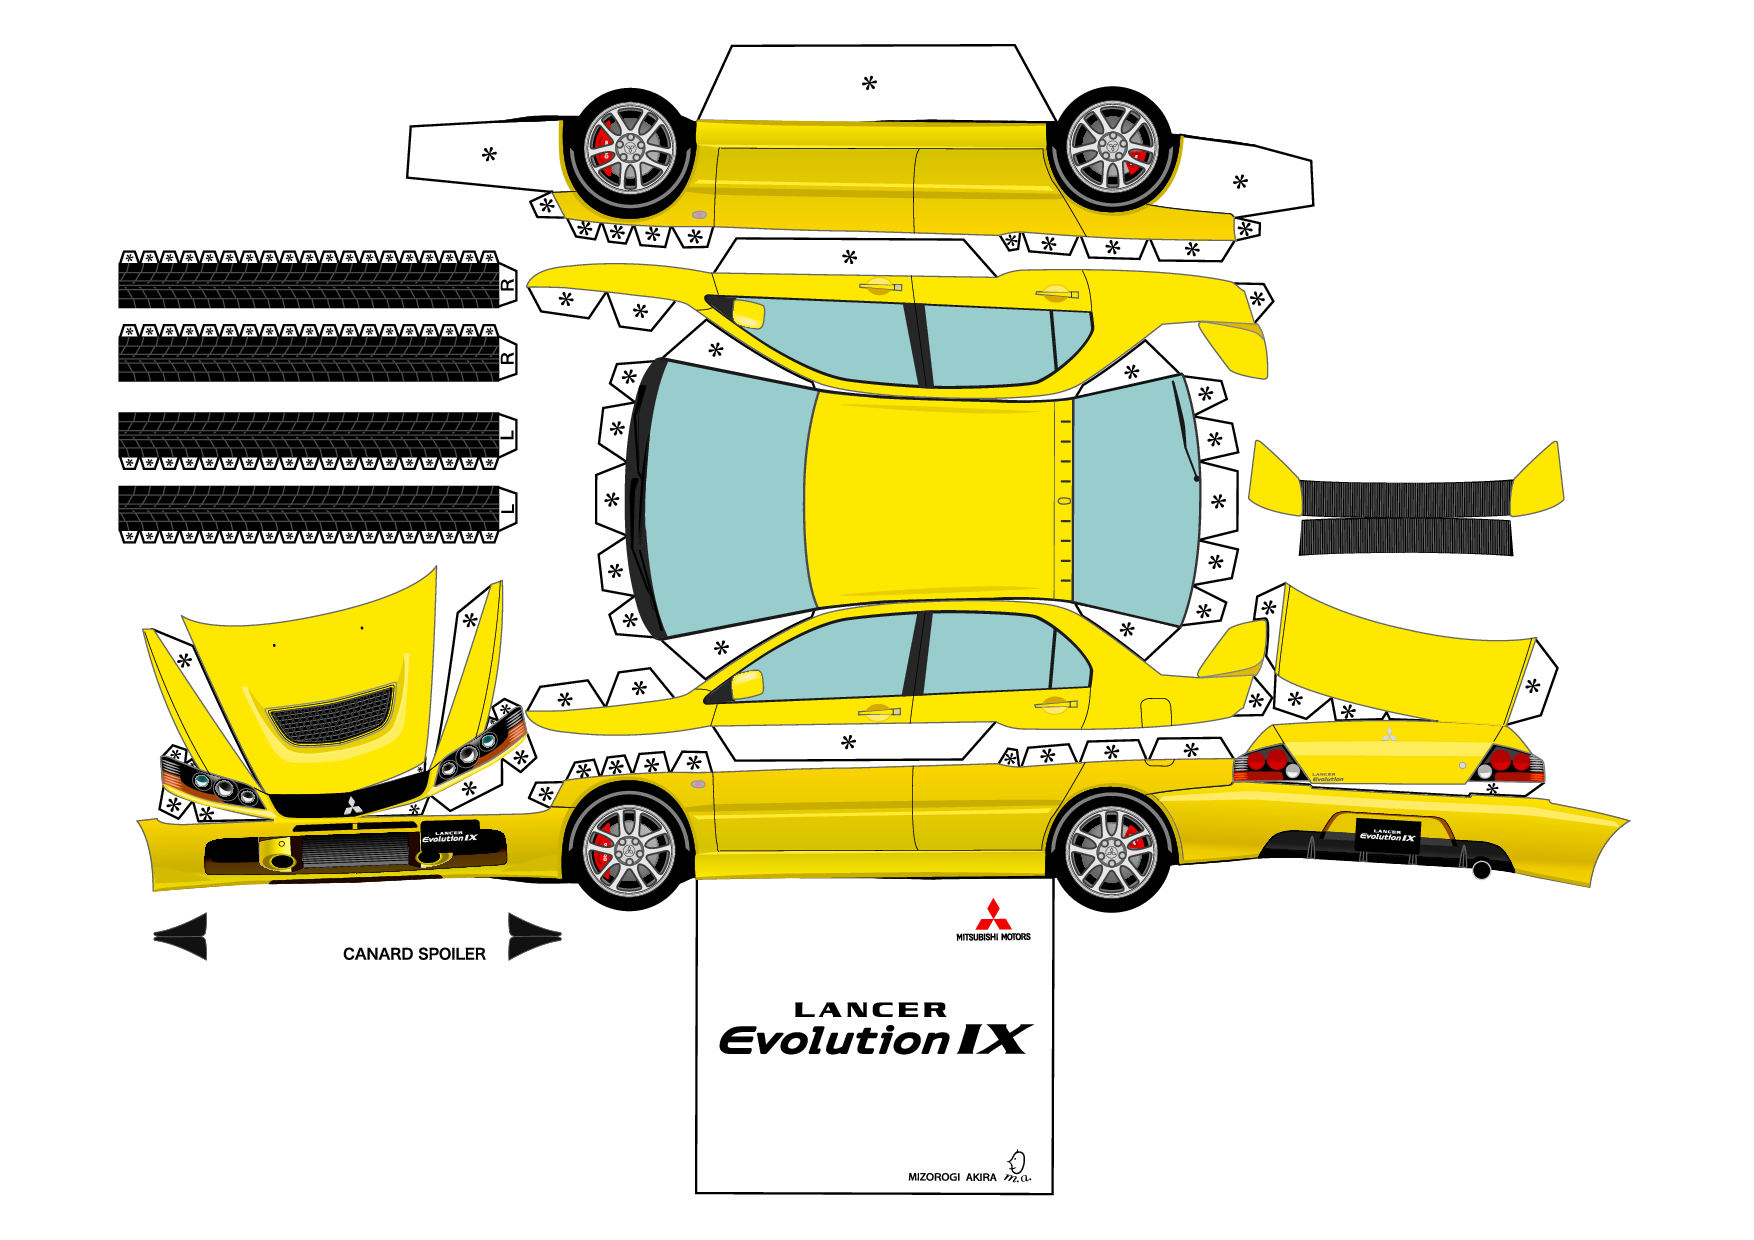 Image detail for lancer evo 9 printable paper craft project image detail for lancer evo 9 printable paper craft project jeuxipadfo Images